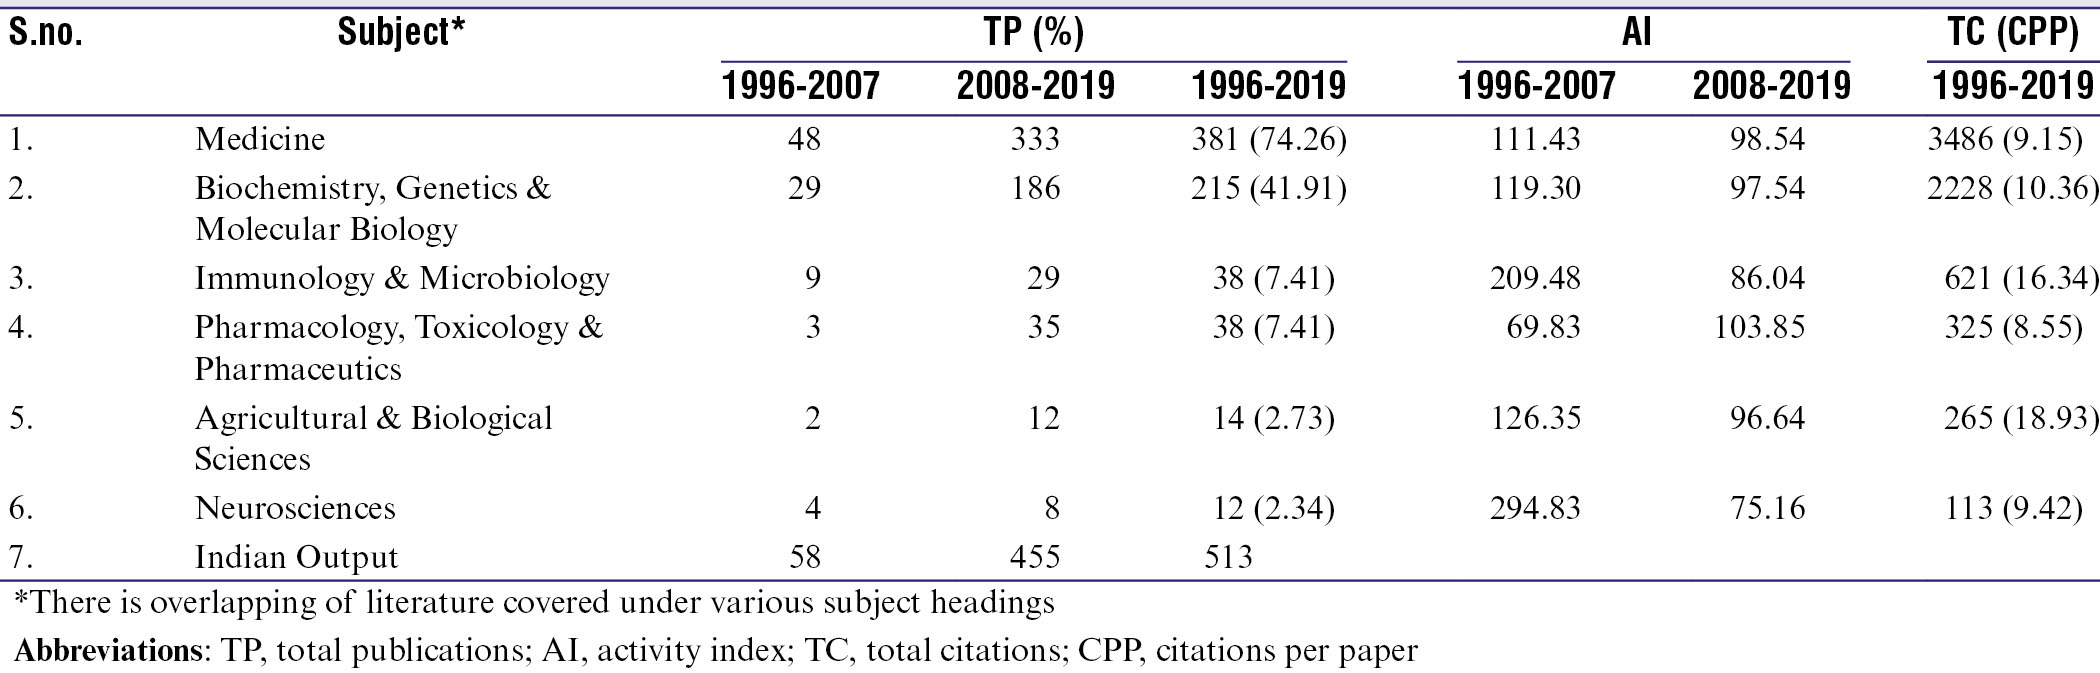 ESM Table 4: Subject-wise breakup of Indian publications on type 1 diabetes research during 1996-2019